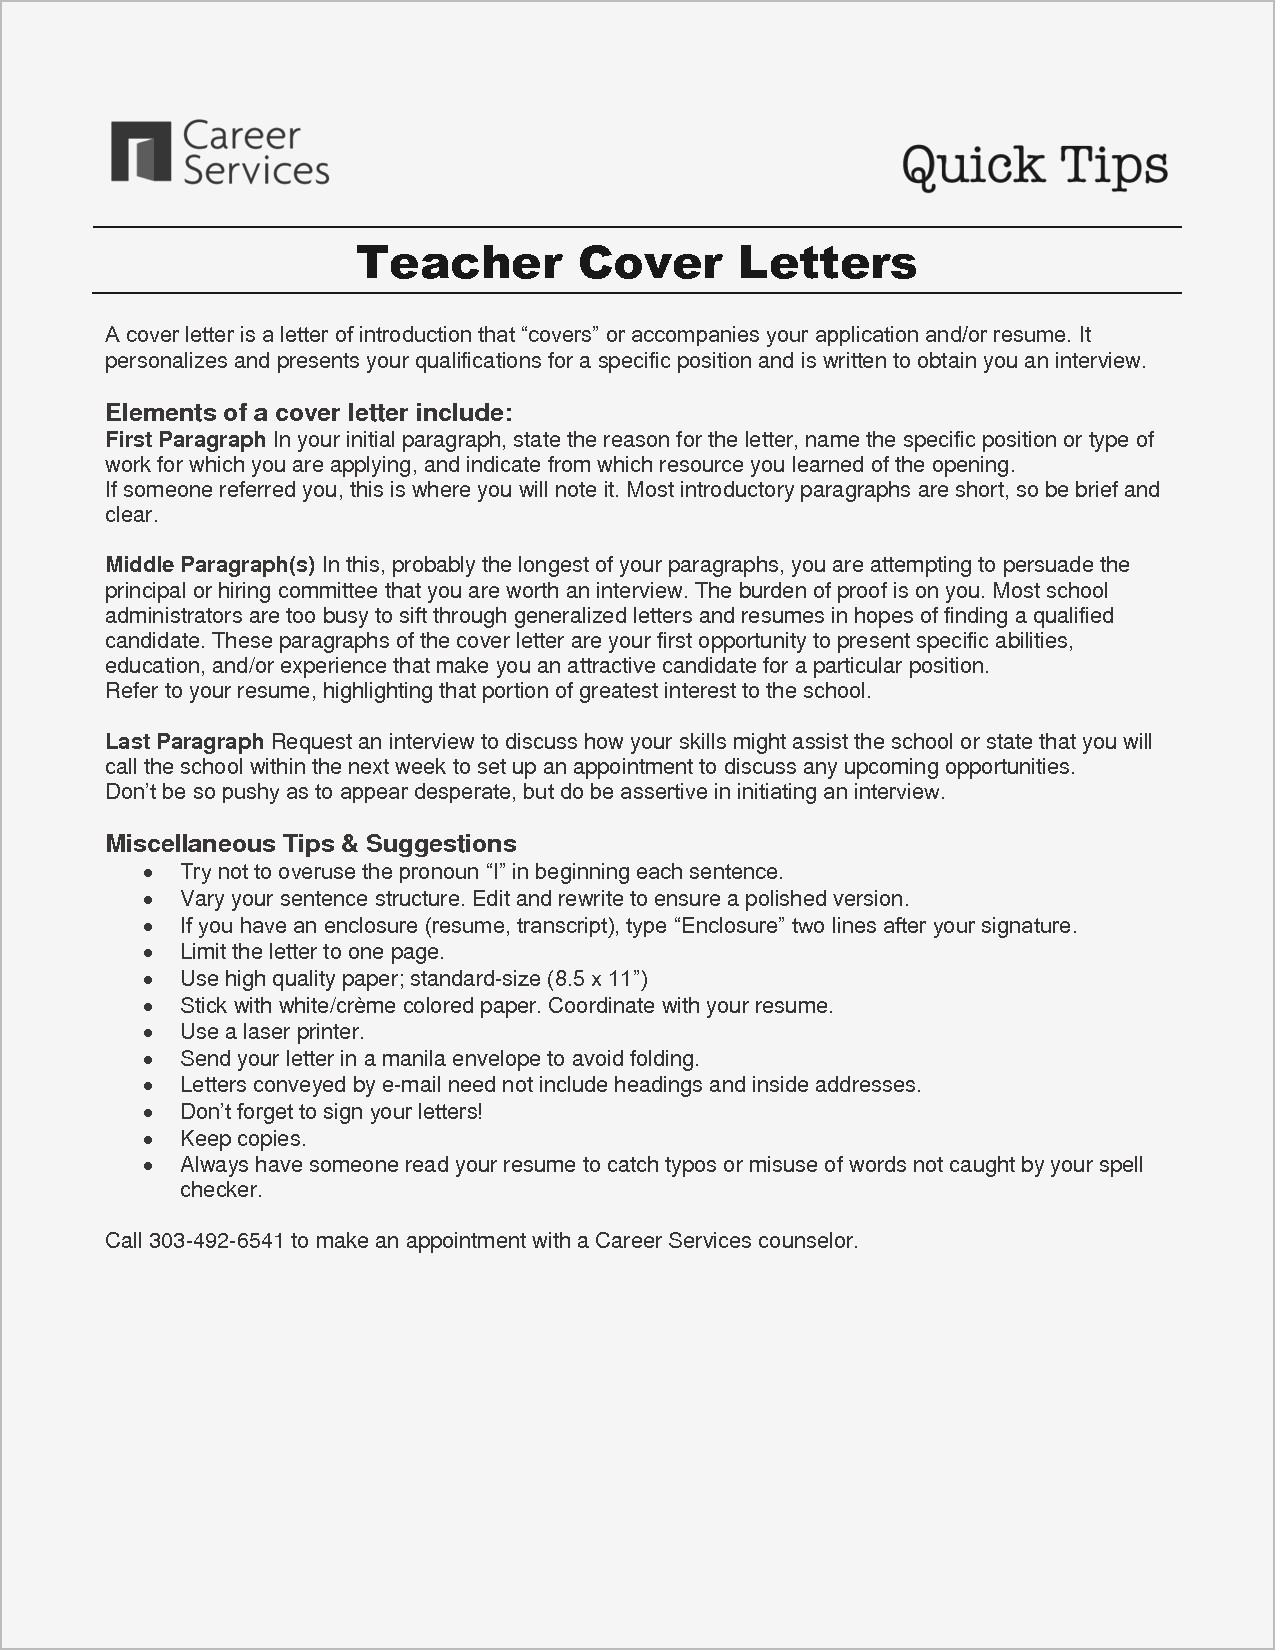 Jimmy Sweeney Cover Letter Template